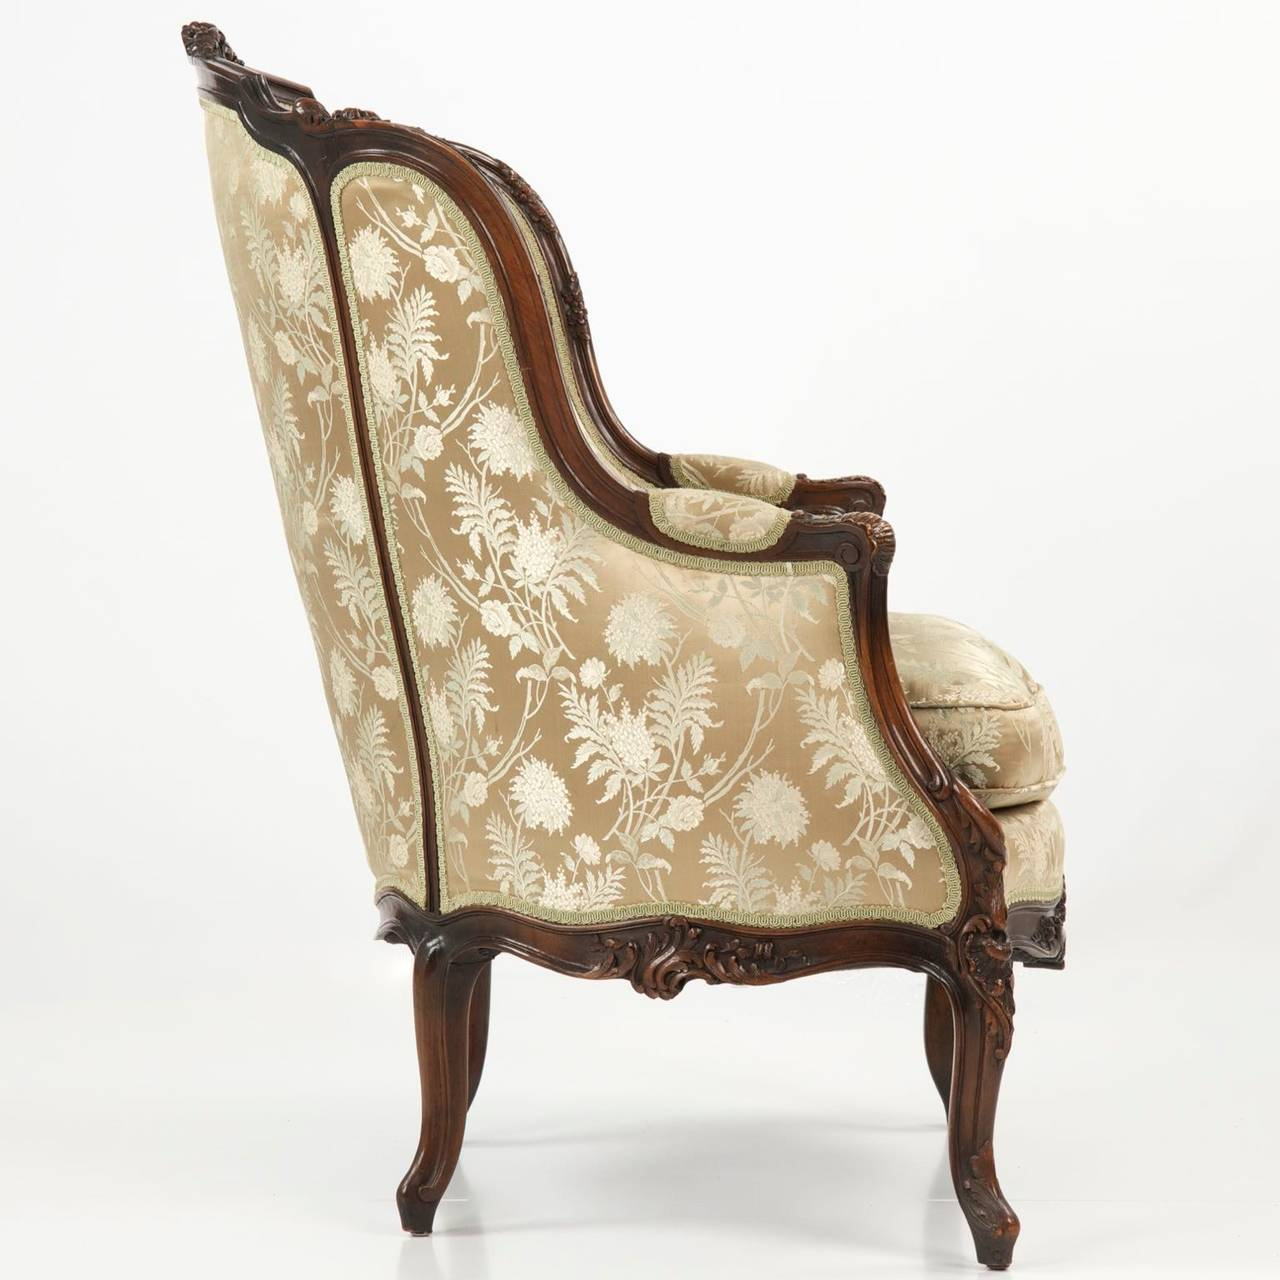 French 19th Century Rococo Revival Antique Bergere Armchair in Louis XV  Taste For Sale - 19th Century Rococo Revival Antique Bergere Armchair In Louis XV